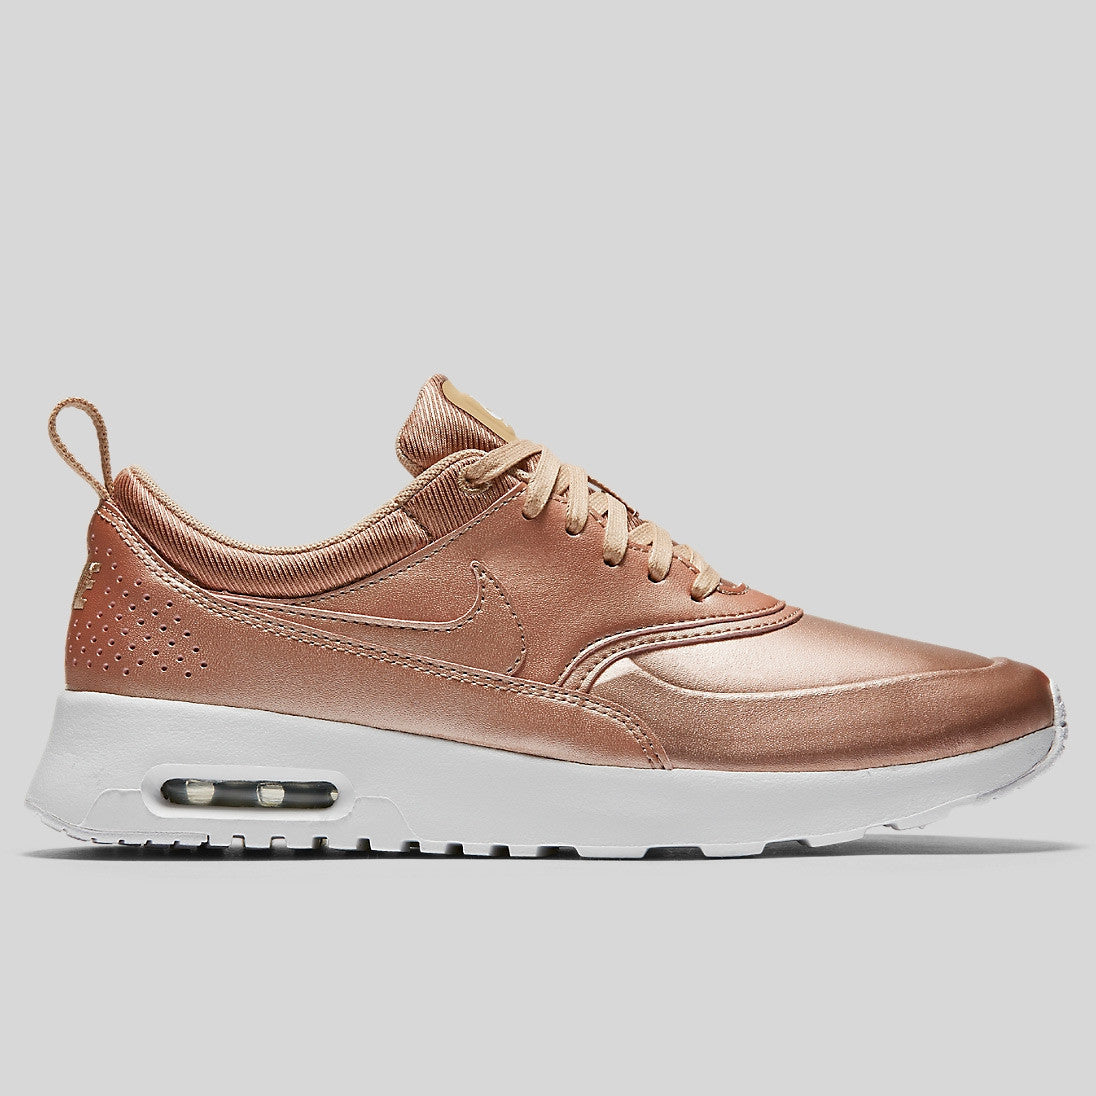 1ced0ecee6 Nike Wmns Air Max Thea SE Metallic Red Bronze Summit White (861674-902)